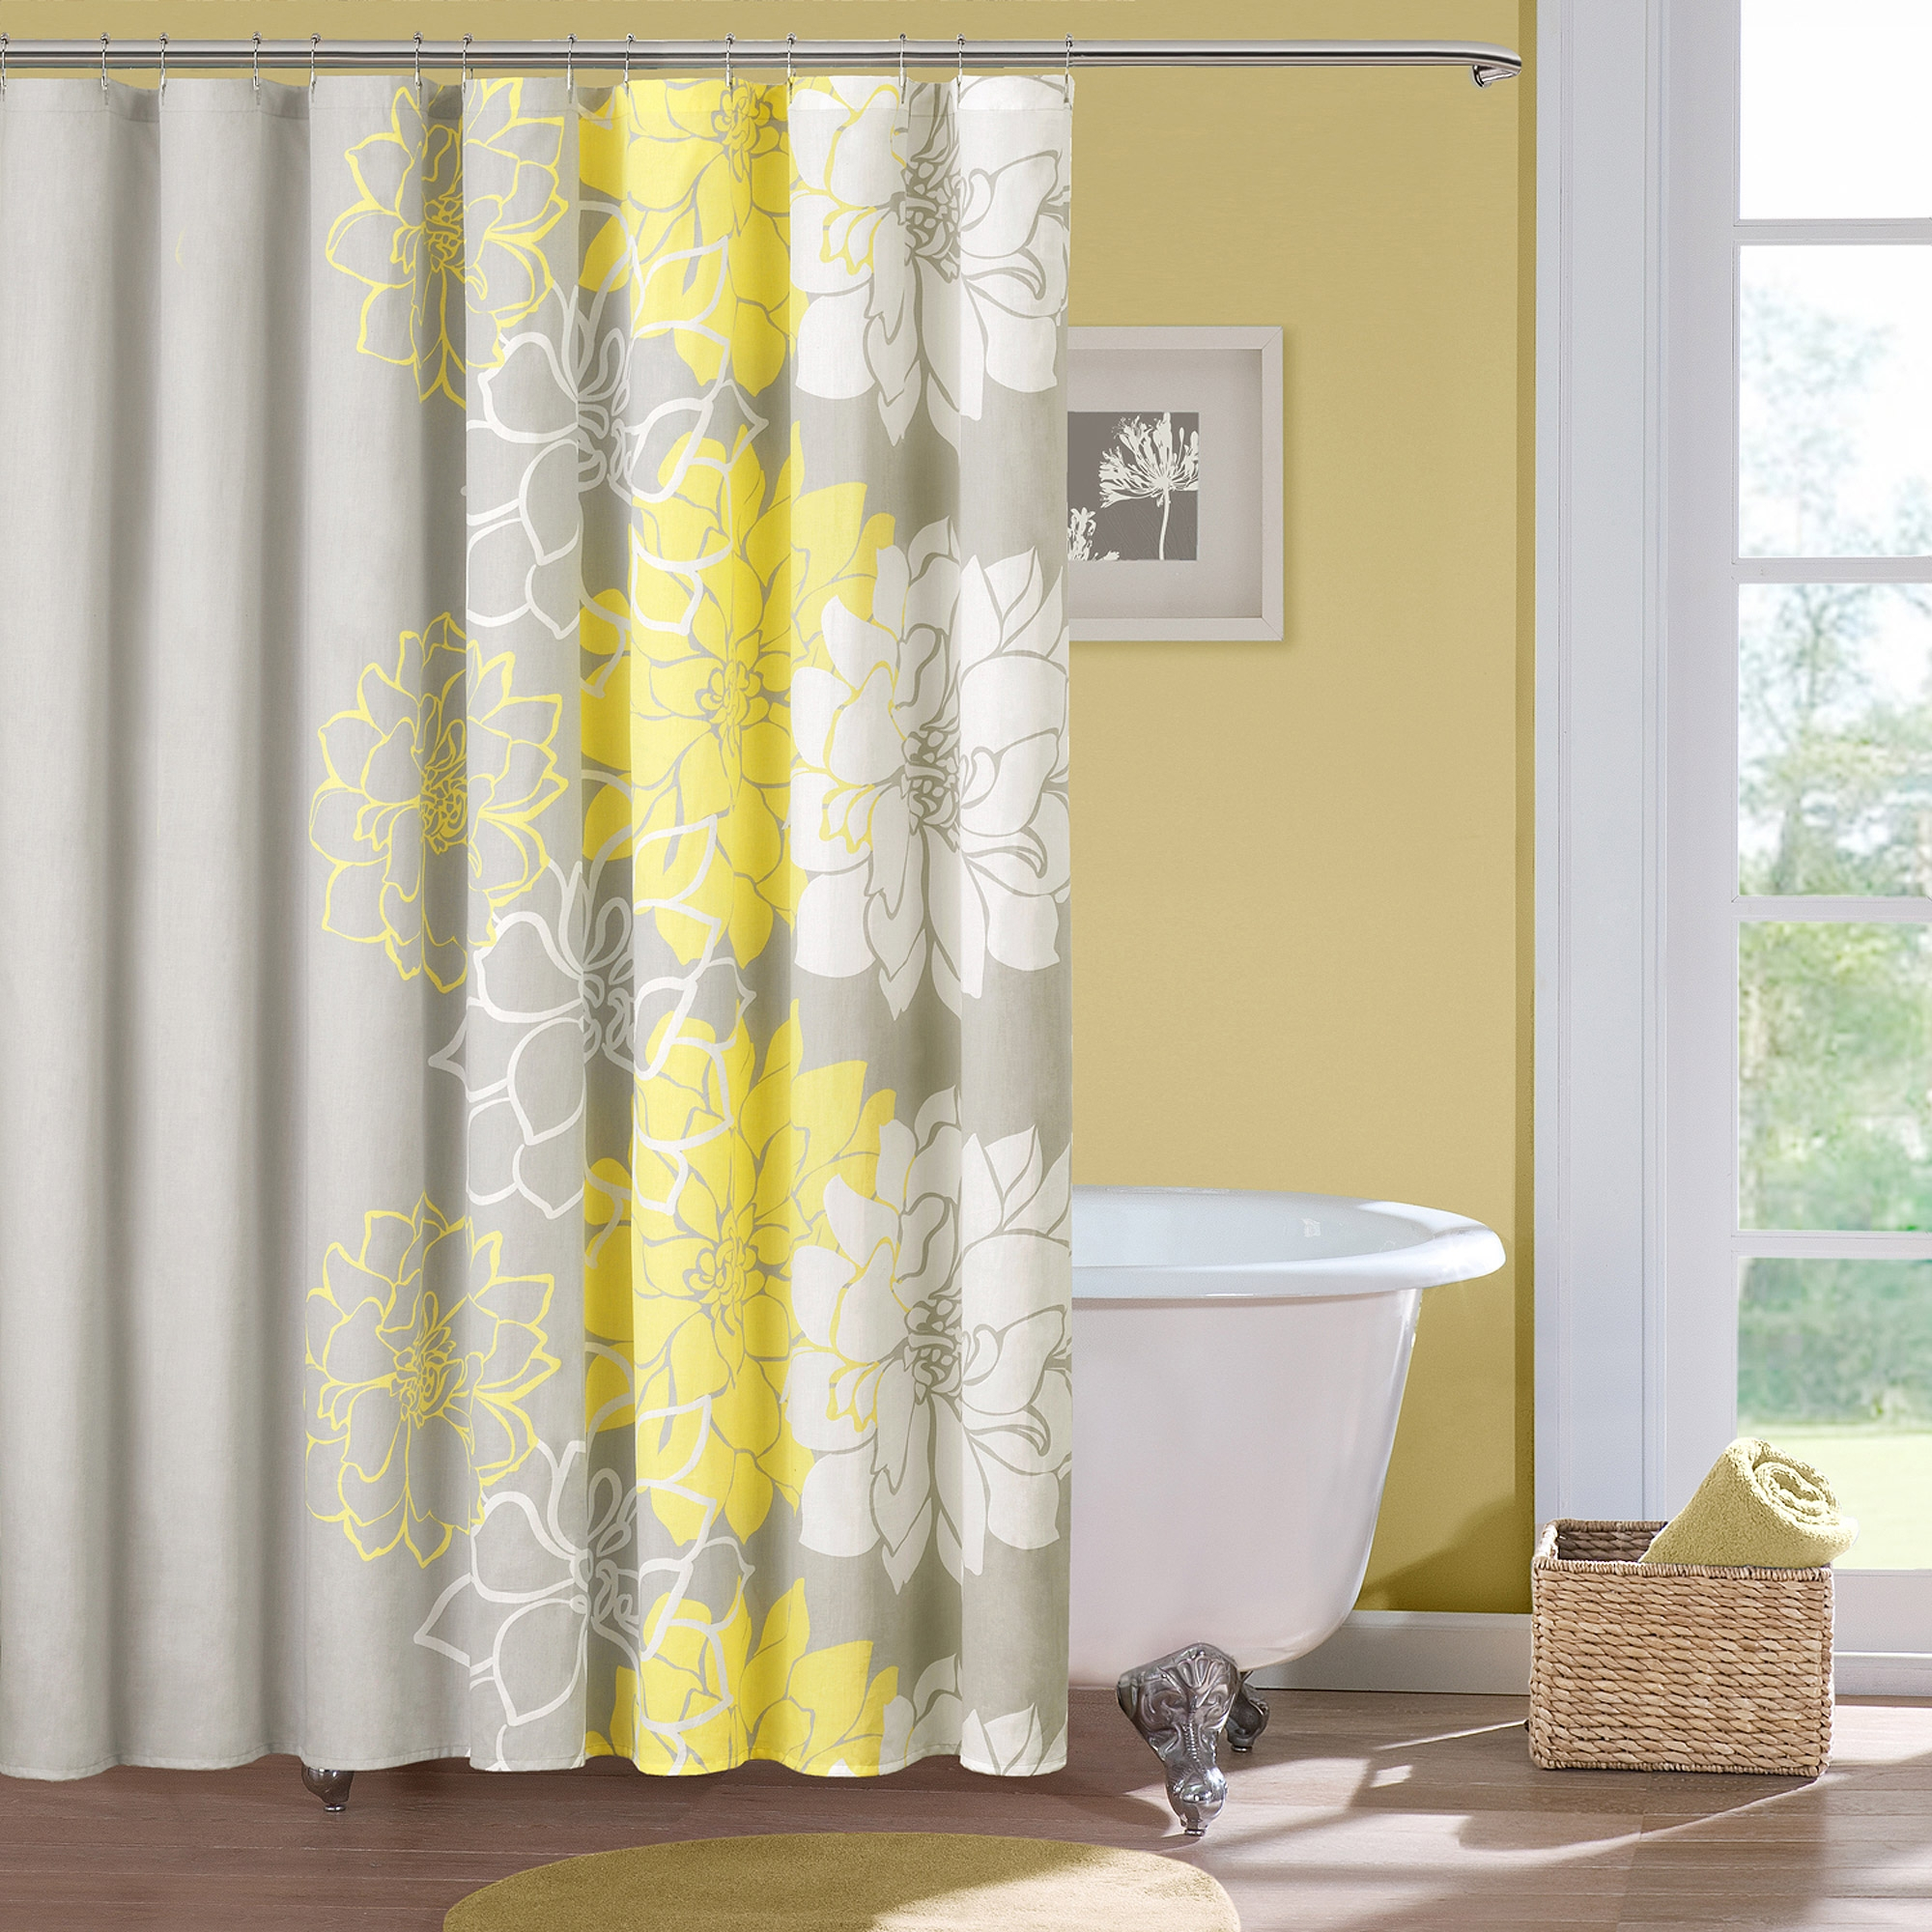 Shower Curtain Extra Wide And Long • Shower Curtains Ideas